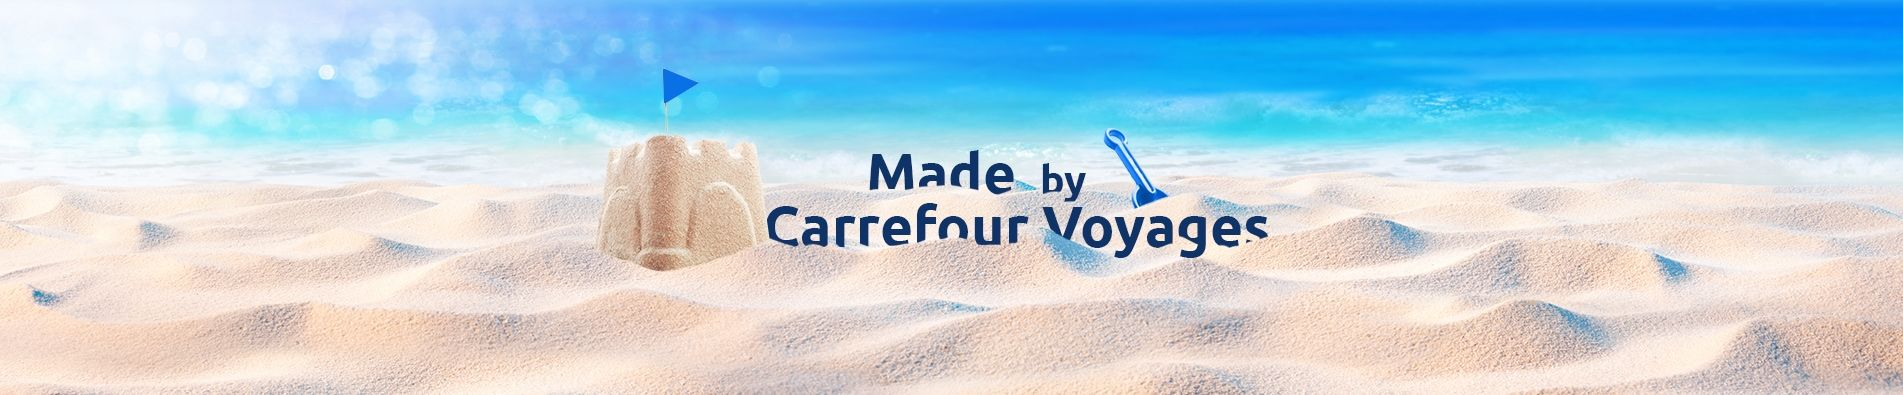 Voyages Made by Carrefour Voyages